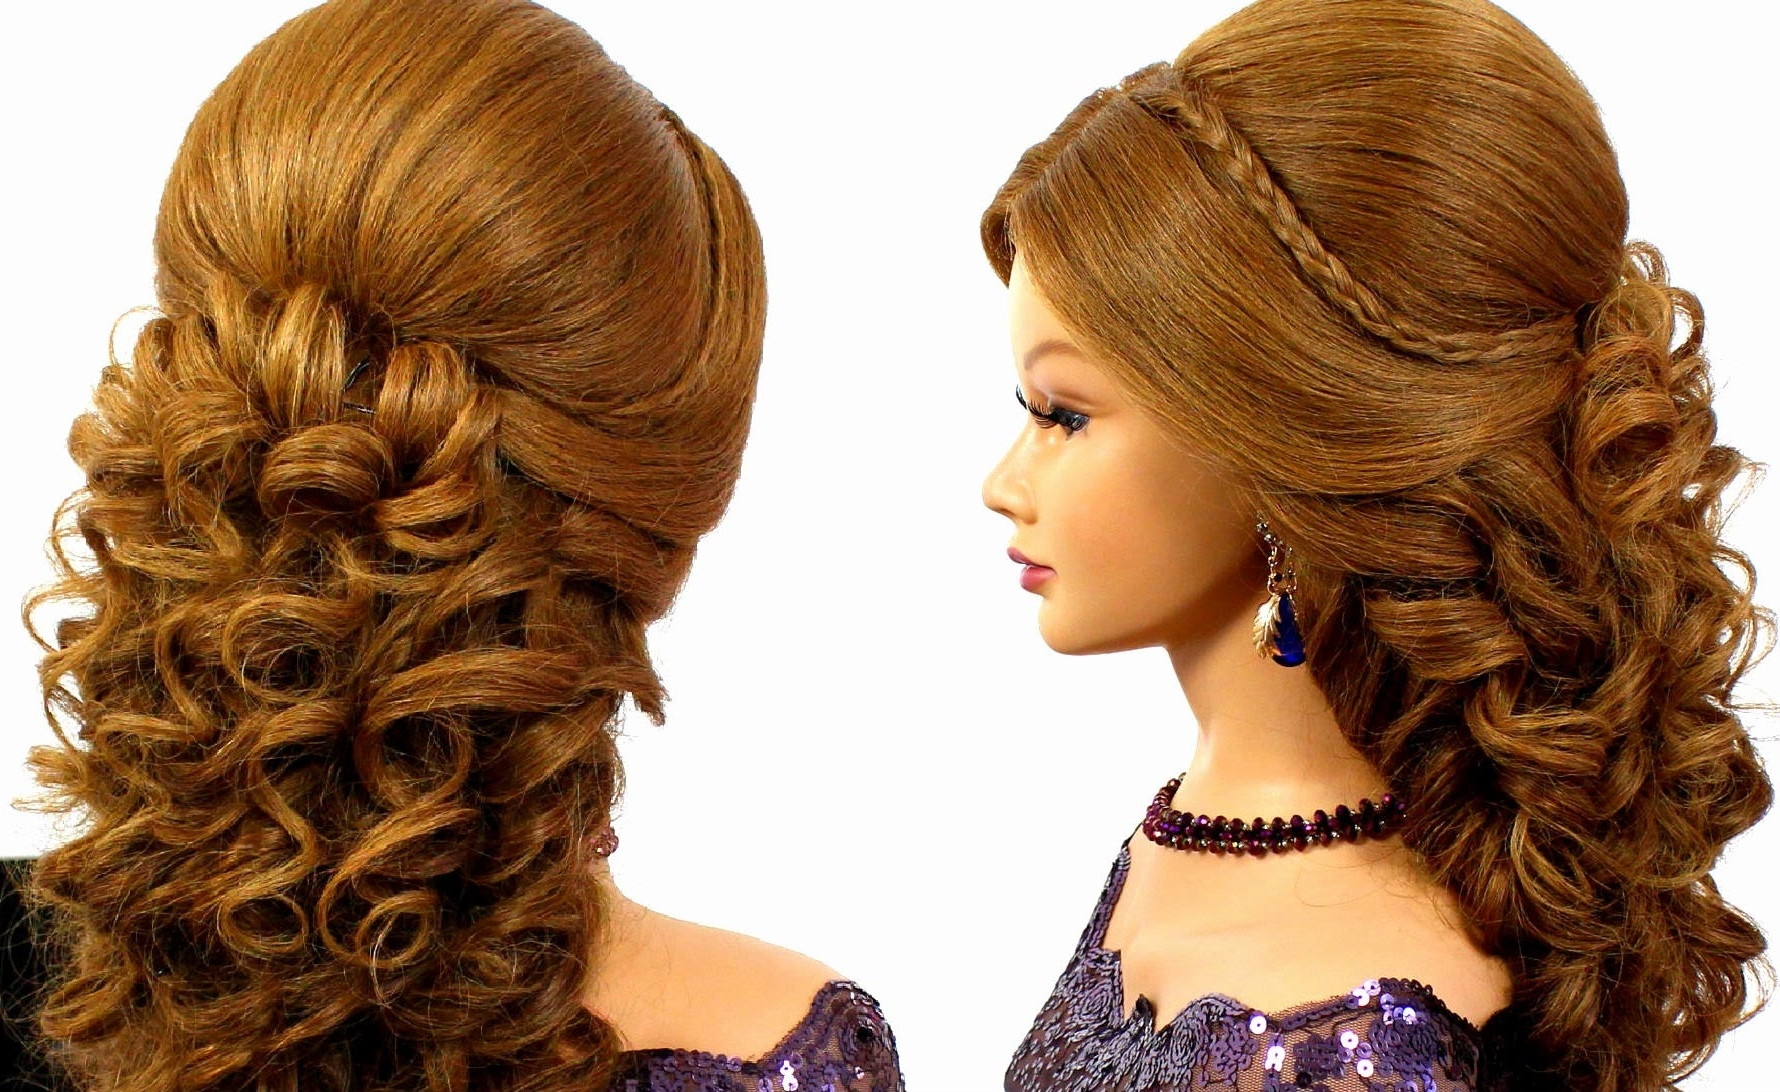 Trendy Wedding Evening Hairstyles Throughout Romantic Bridal Prom Hairstyle For Long Hair Tutorial – Youtube (View 11 of 15)